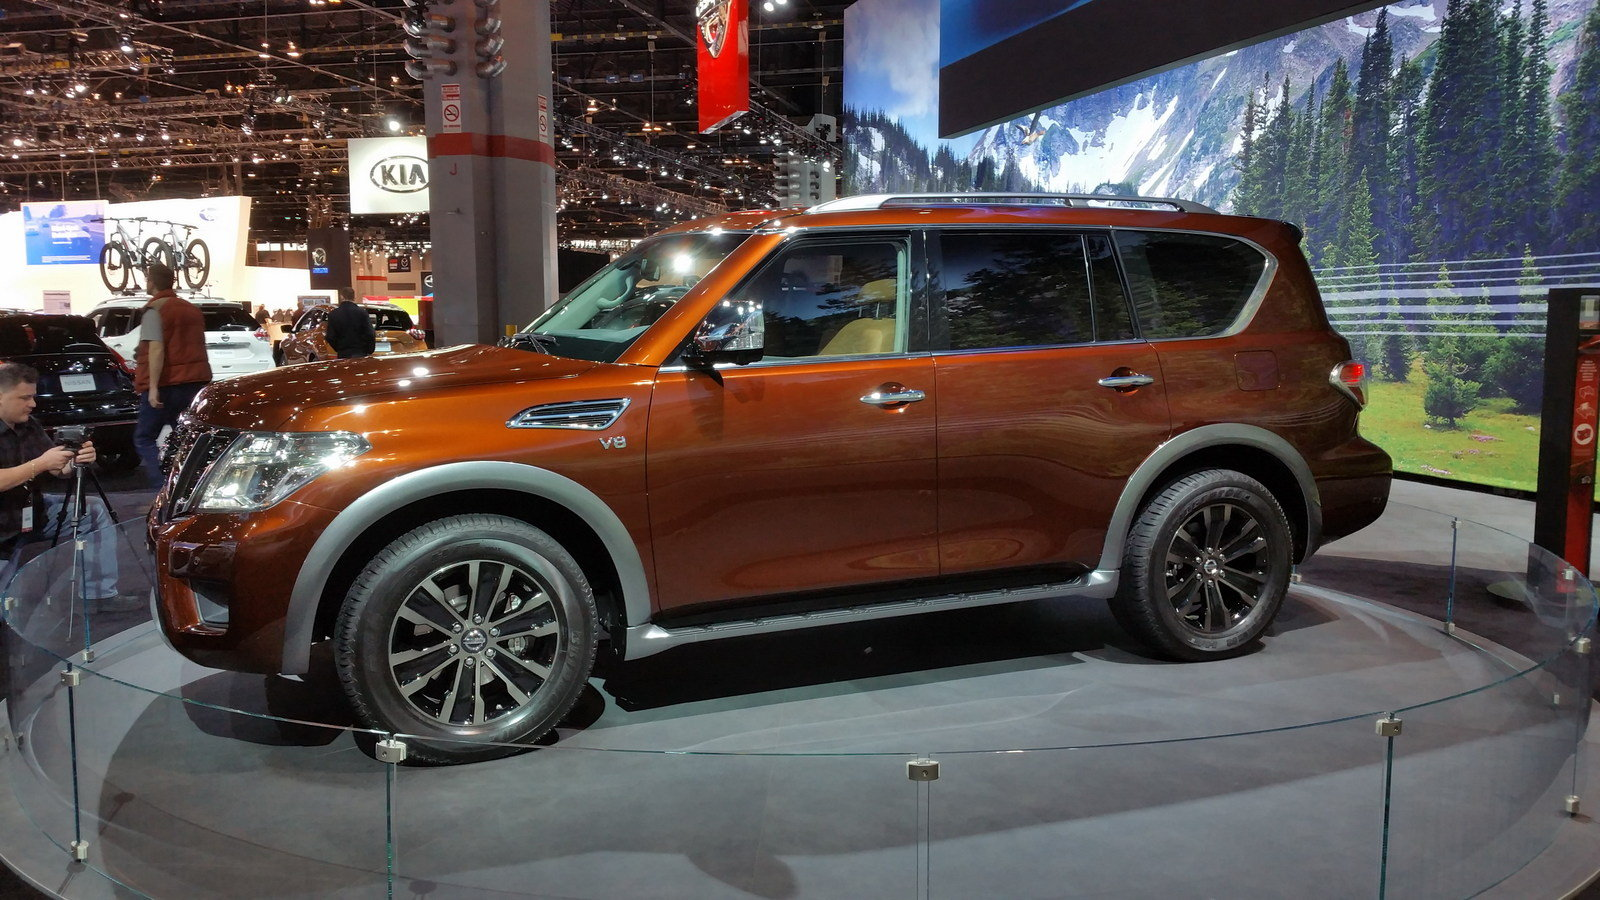 2017 nissan armada picture 666044 truck review top speed. Black Bedroom Furniture Sets. Home Design Ideas